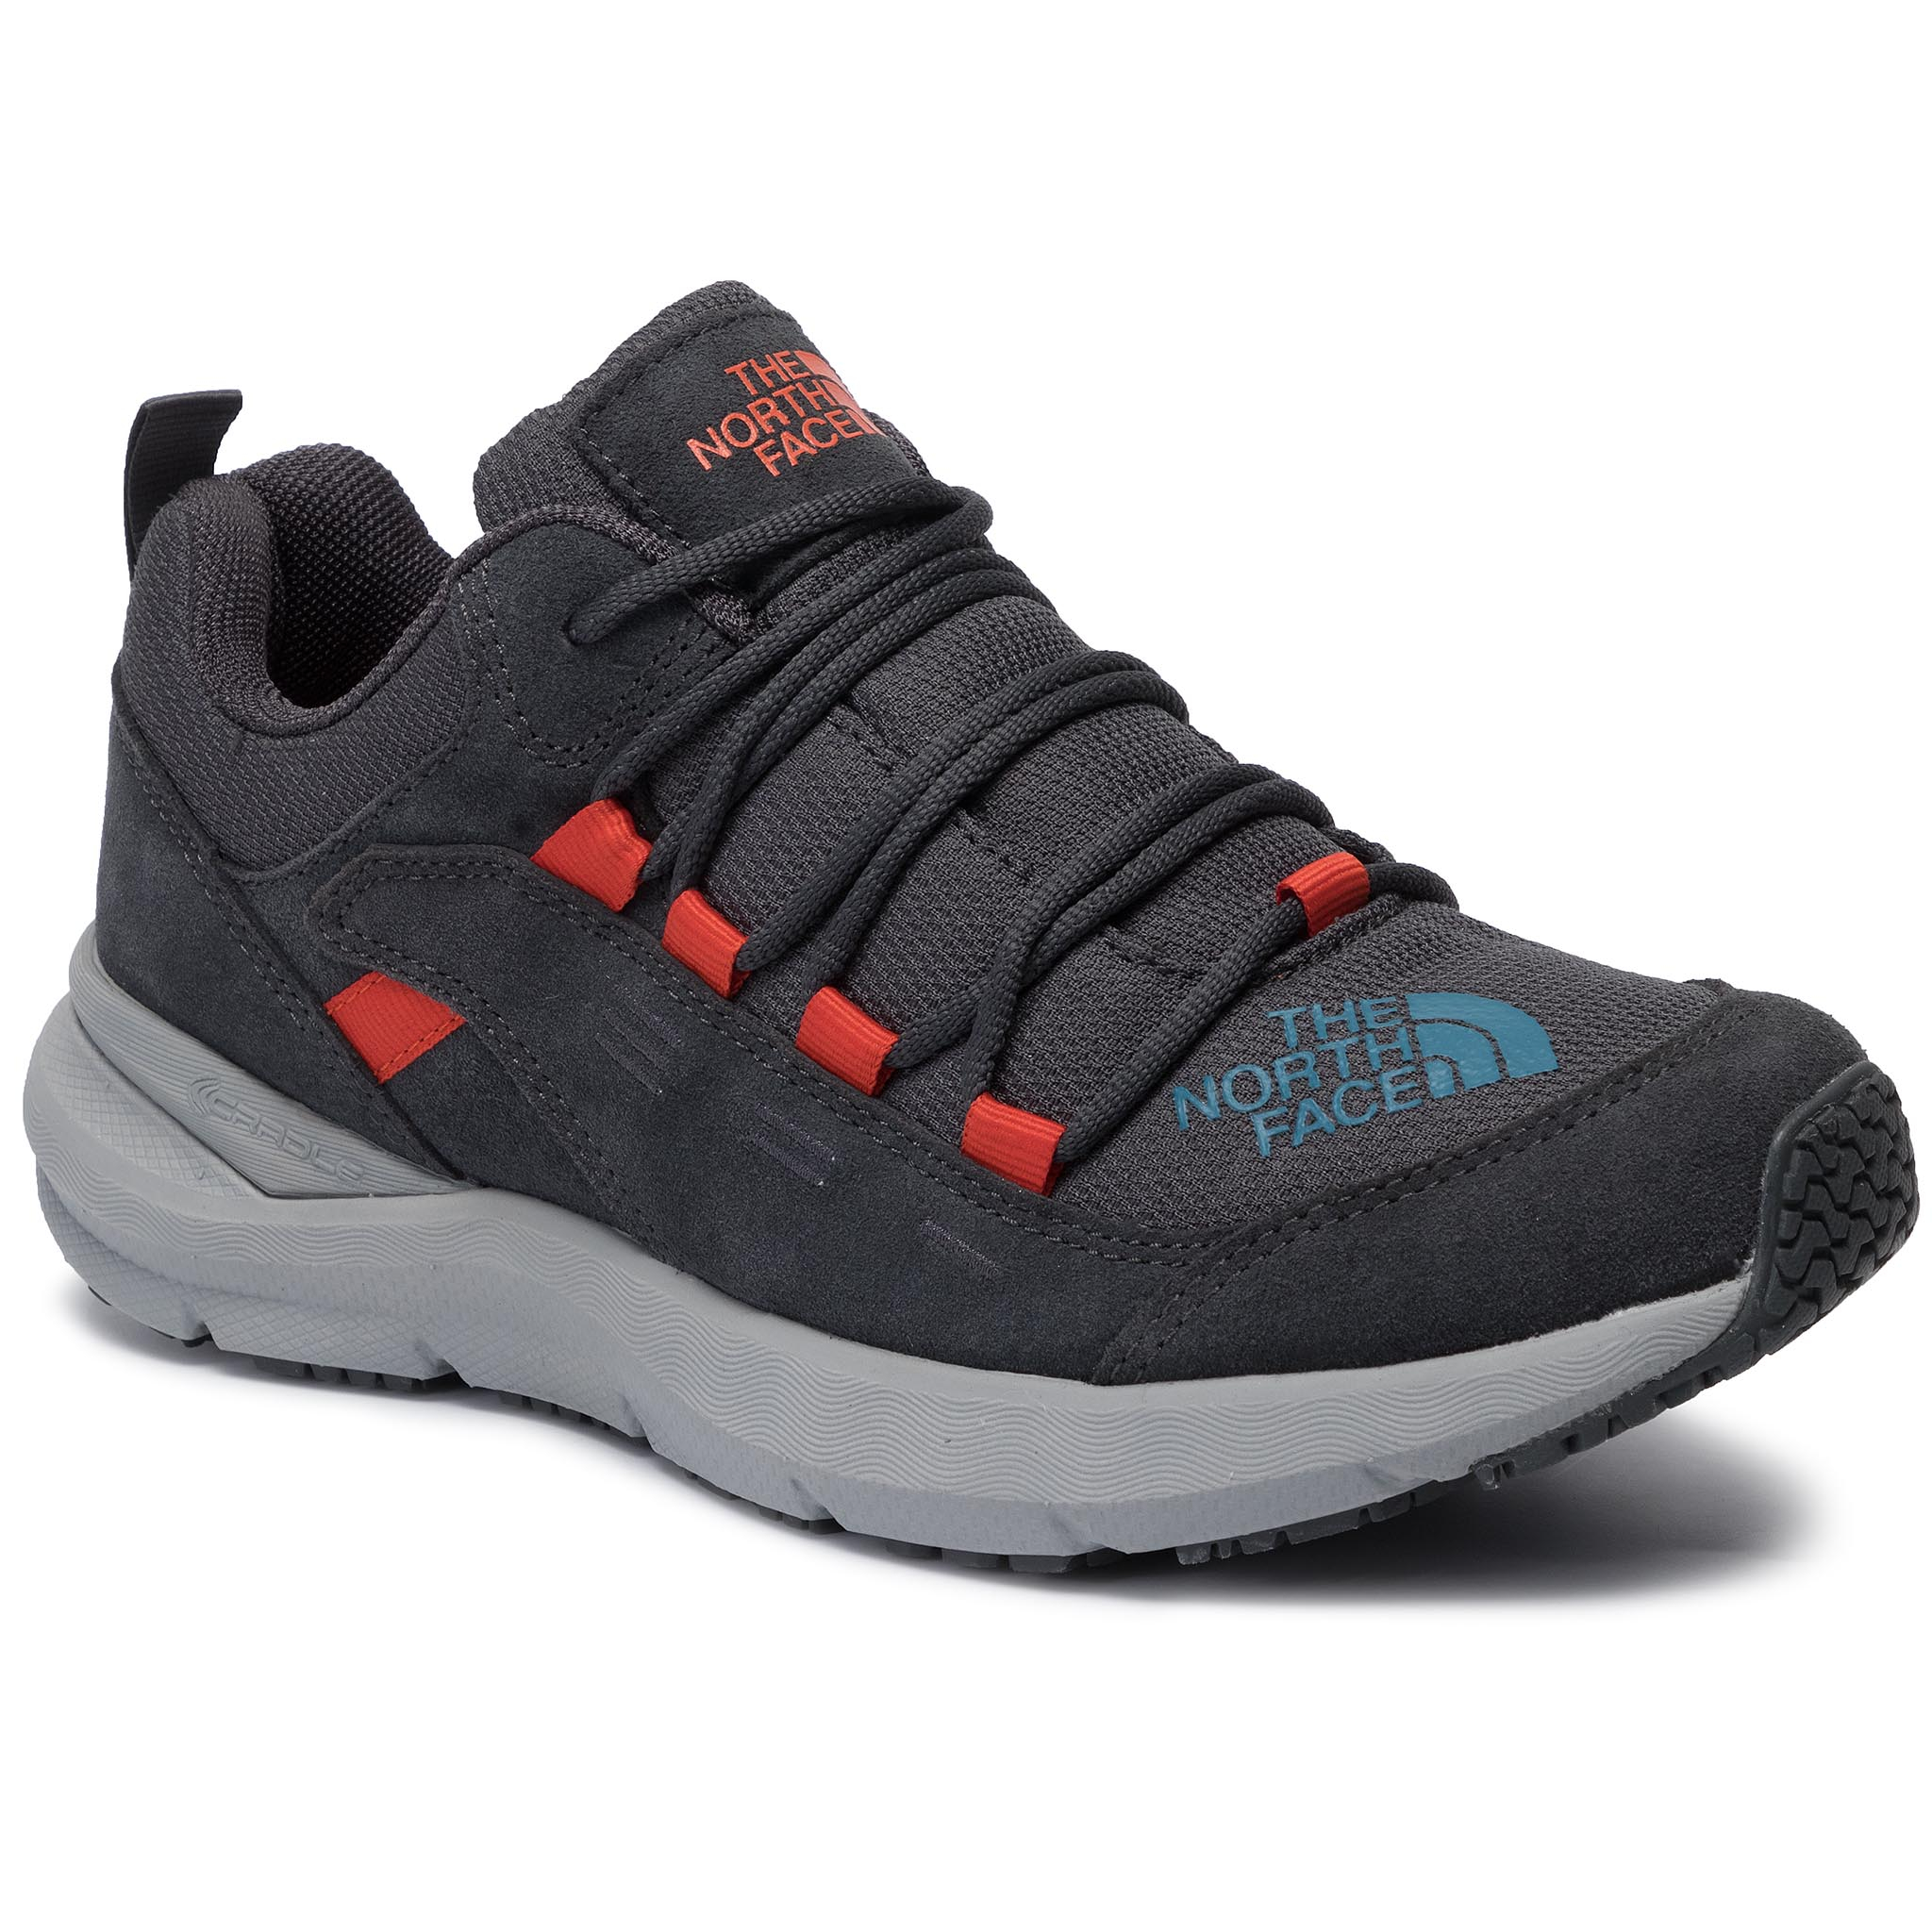 Trekkings THE NORTH FACE - Mountain Sneaker II T93WZ7G3A Dark Shadow Grey/Griffin Grey